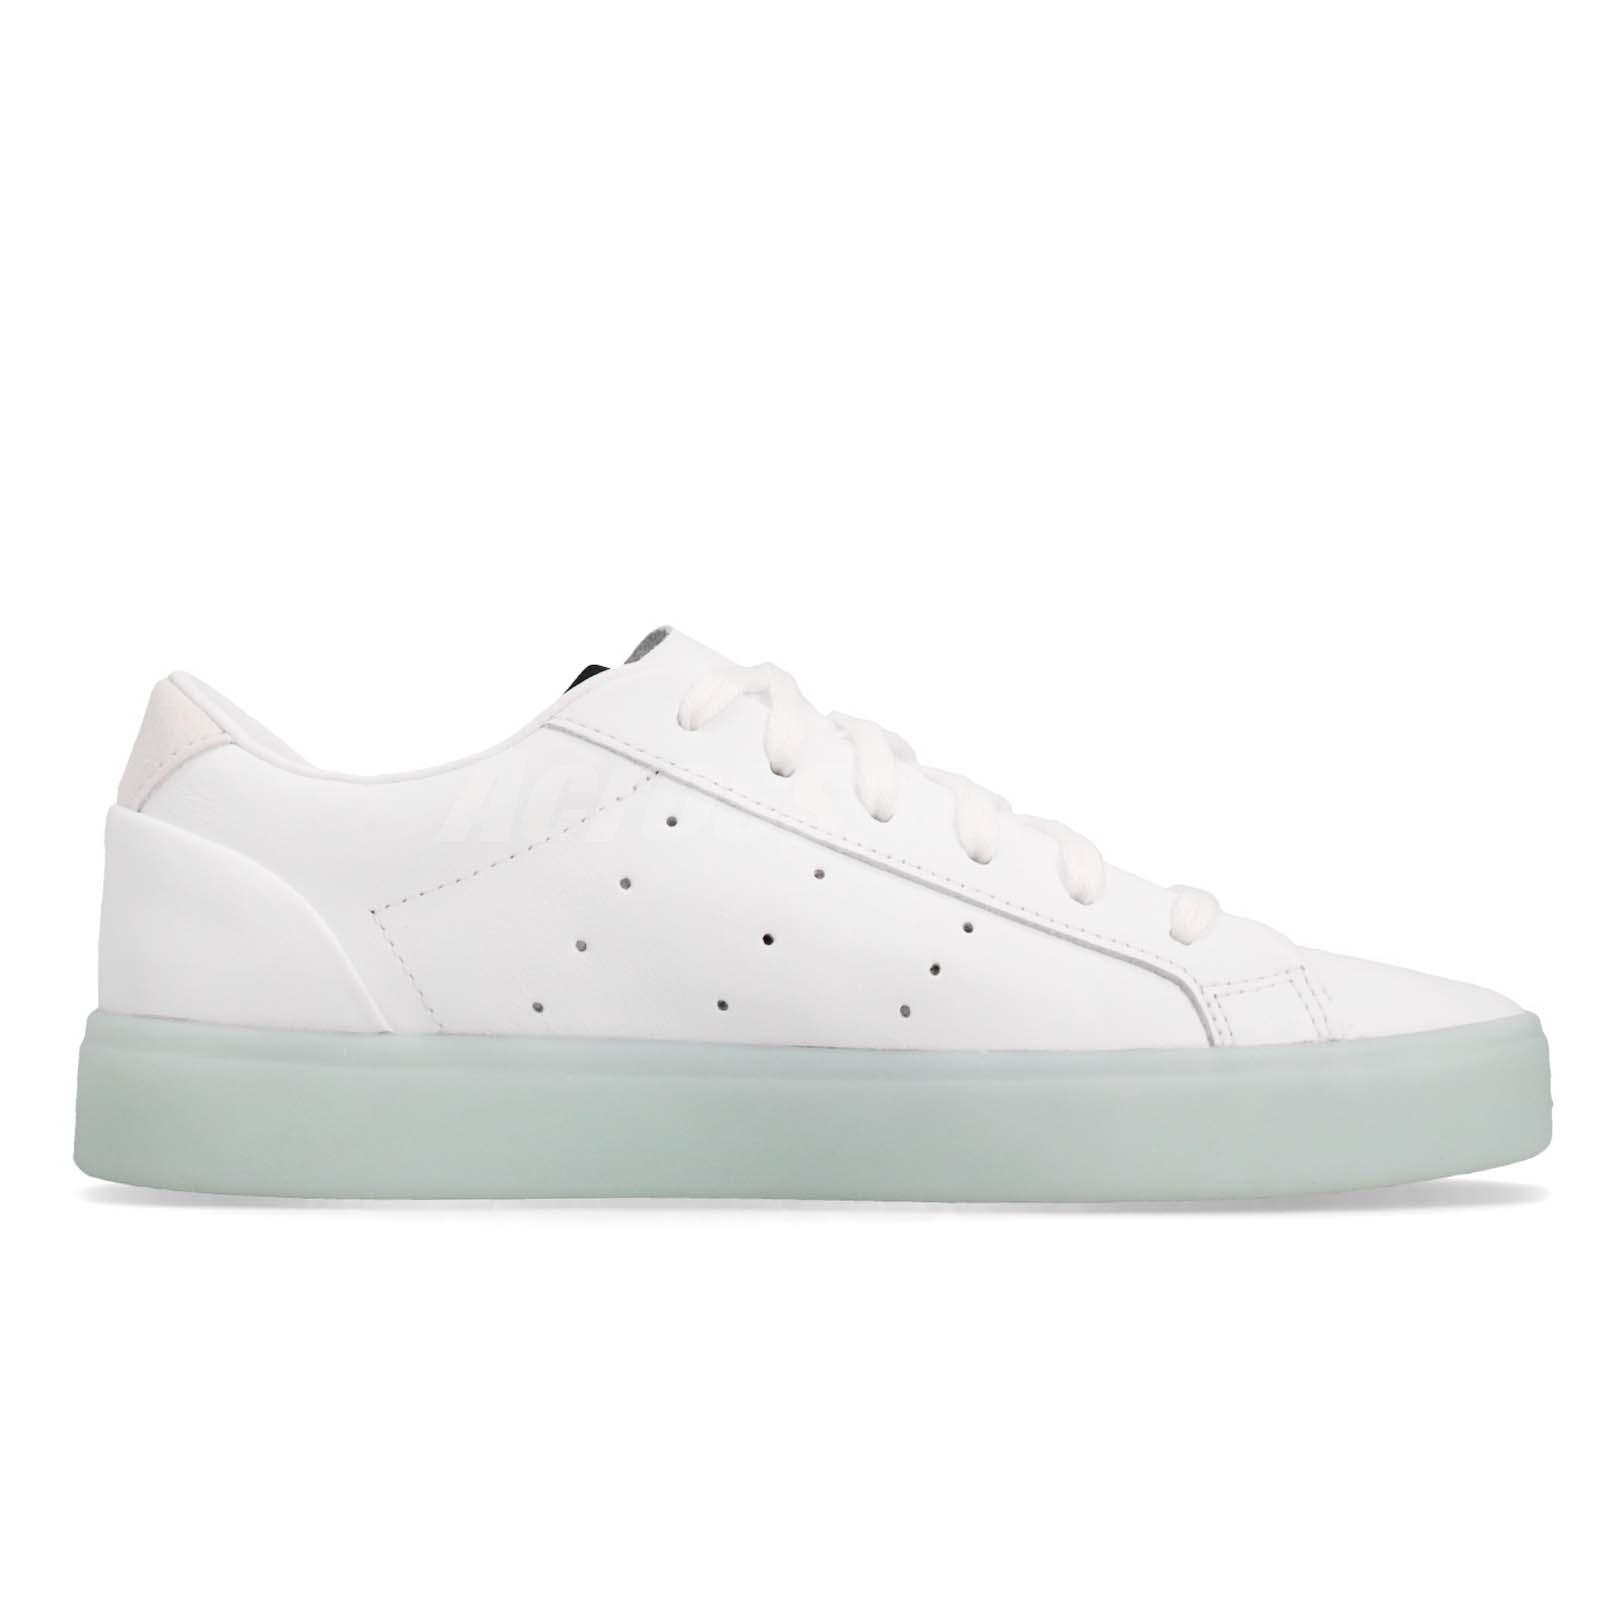 f490357a adidas Originals SLEEK W White Ice Mint Women Casual Lifestyle Shoes ...